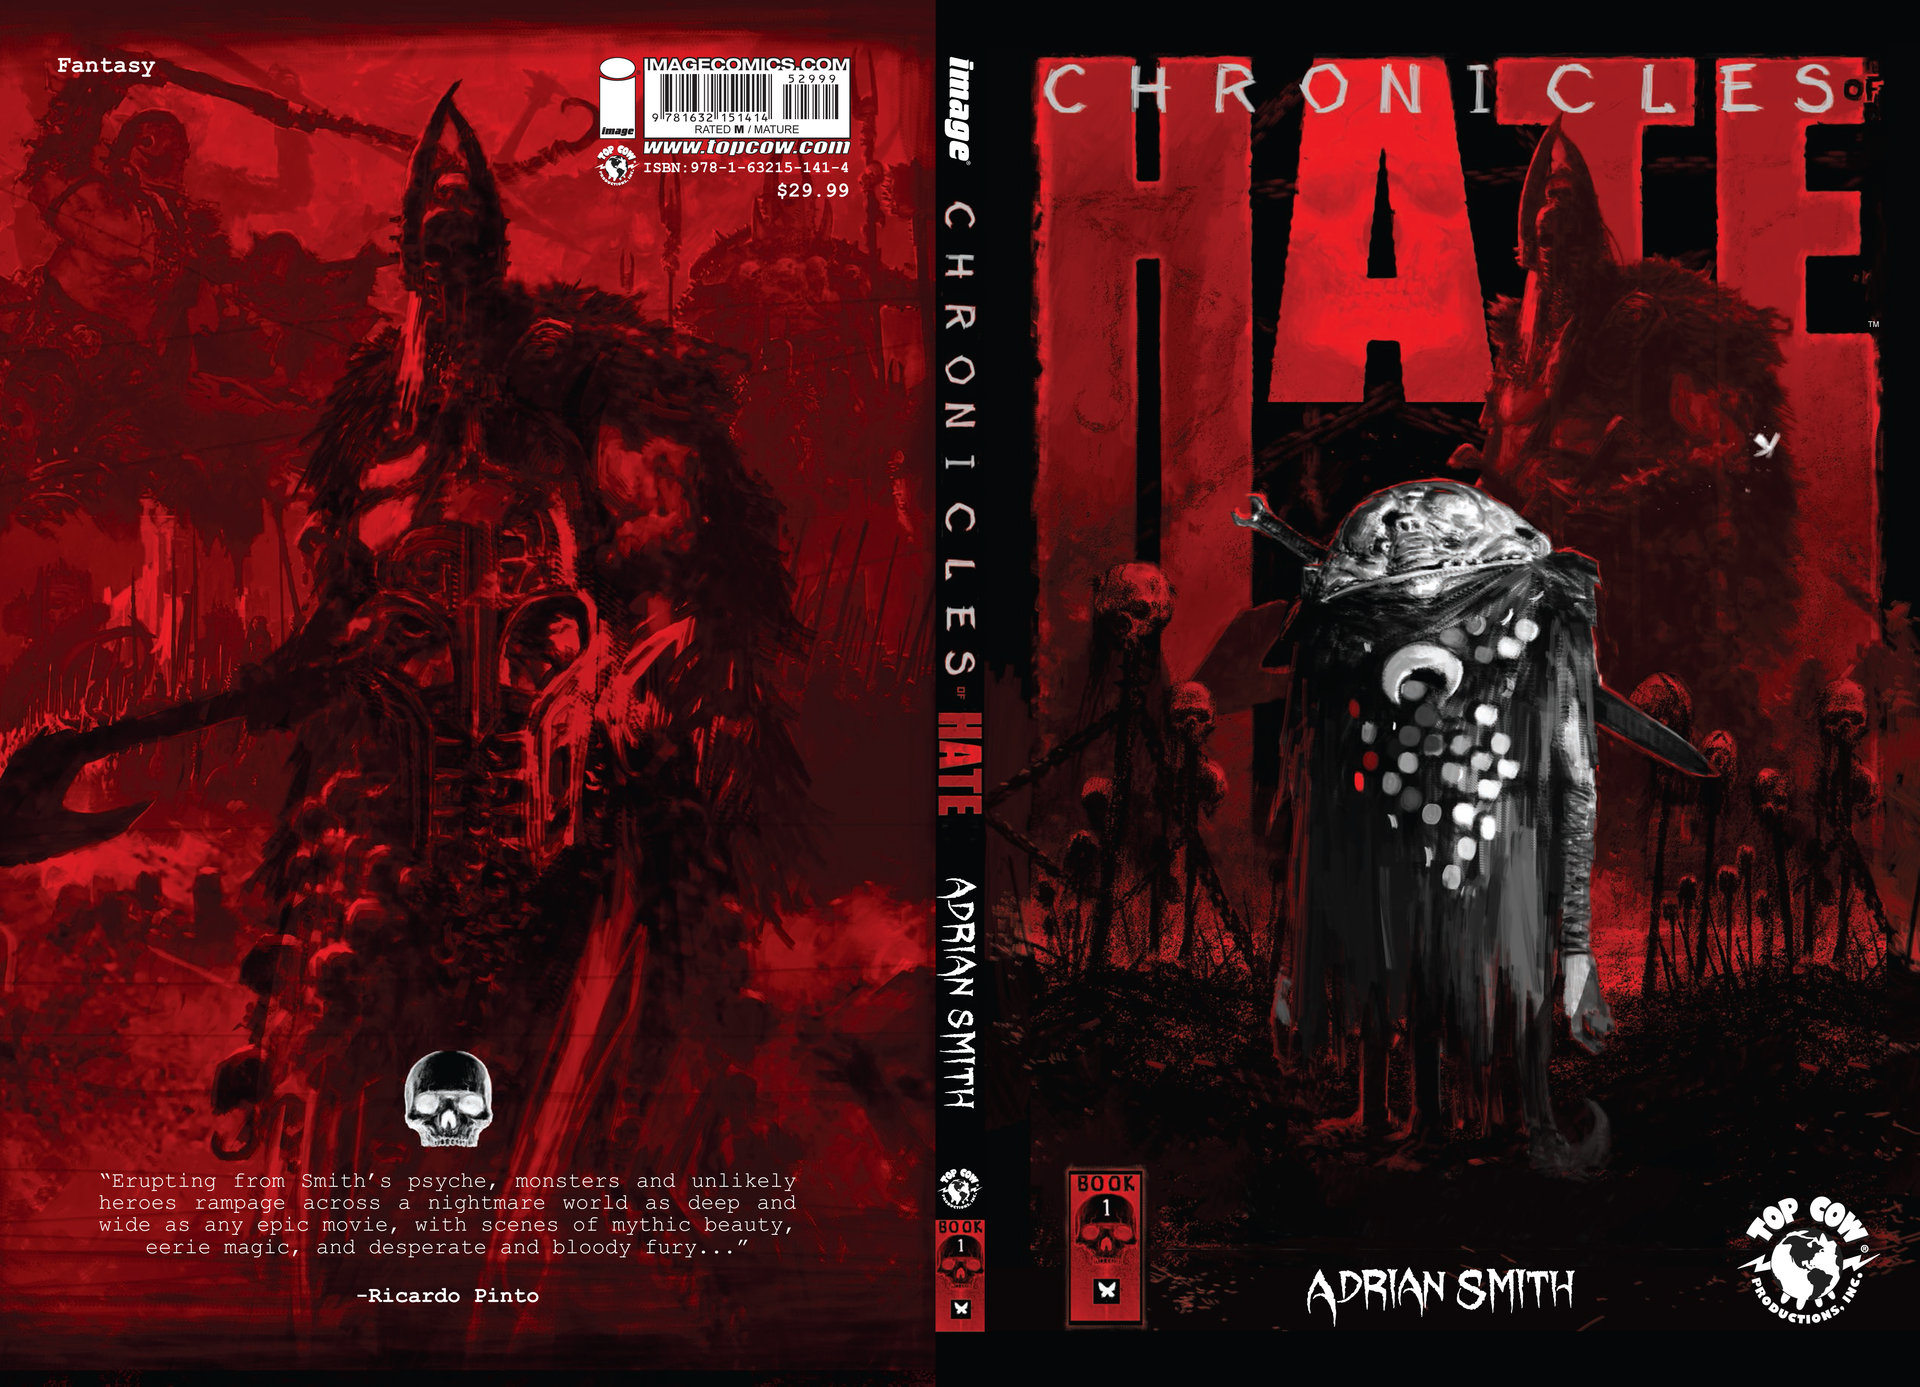 Adrian smith chroniclesofhate cover proof